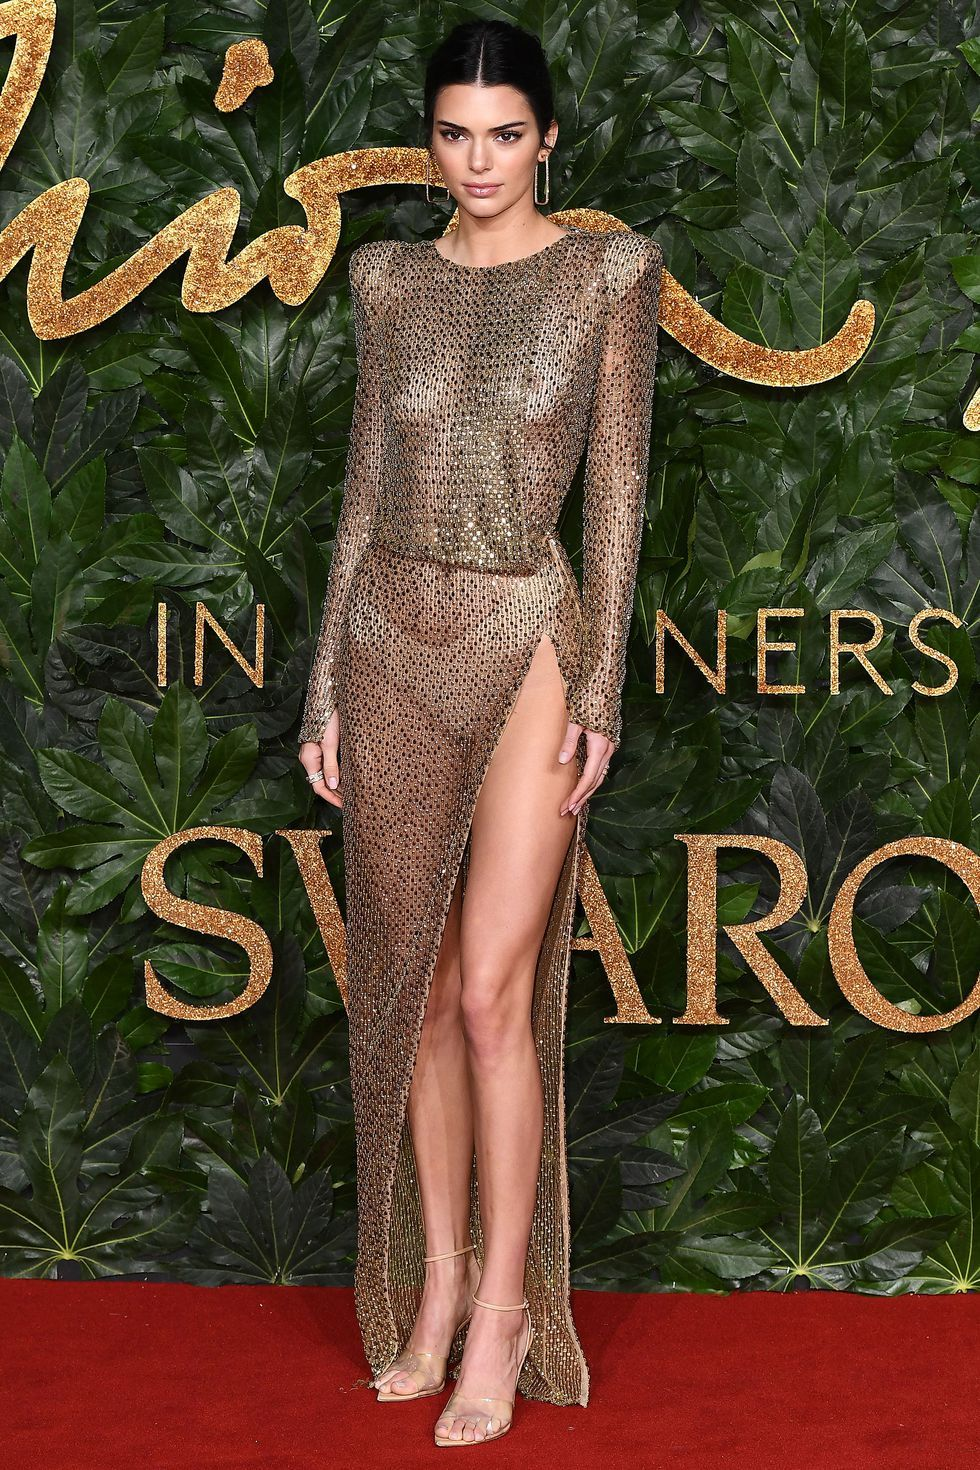 Kendall Jenner wore a completely sheer dress to the Fashion Awards